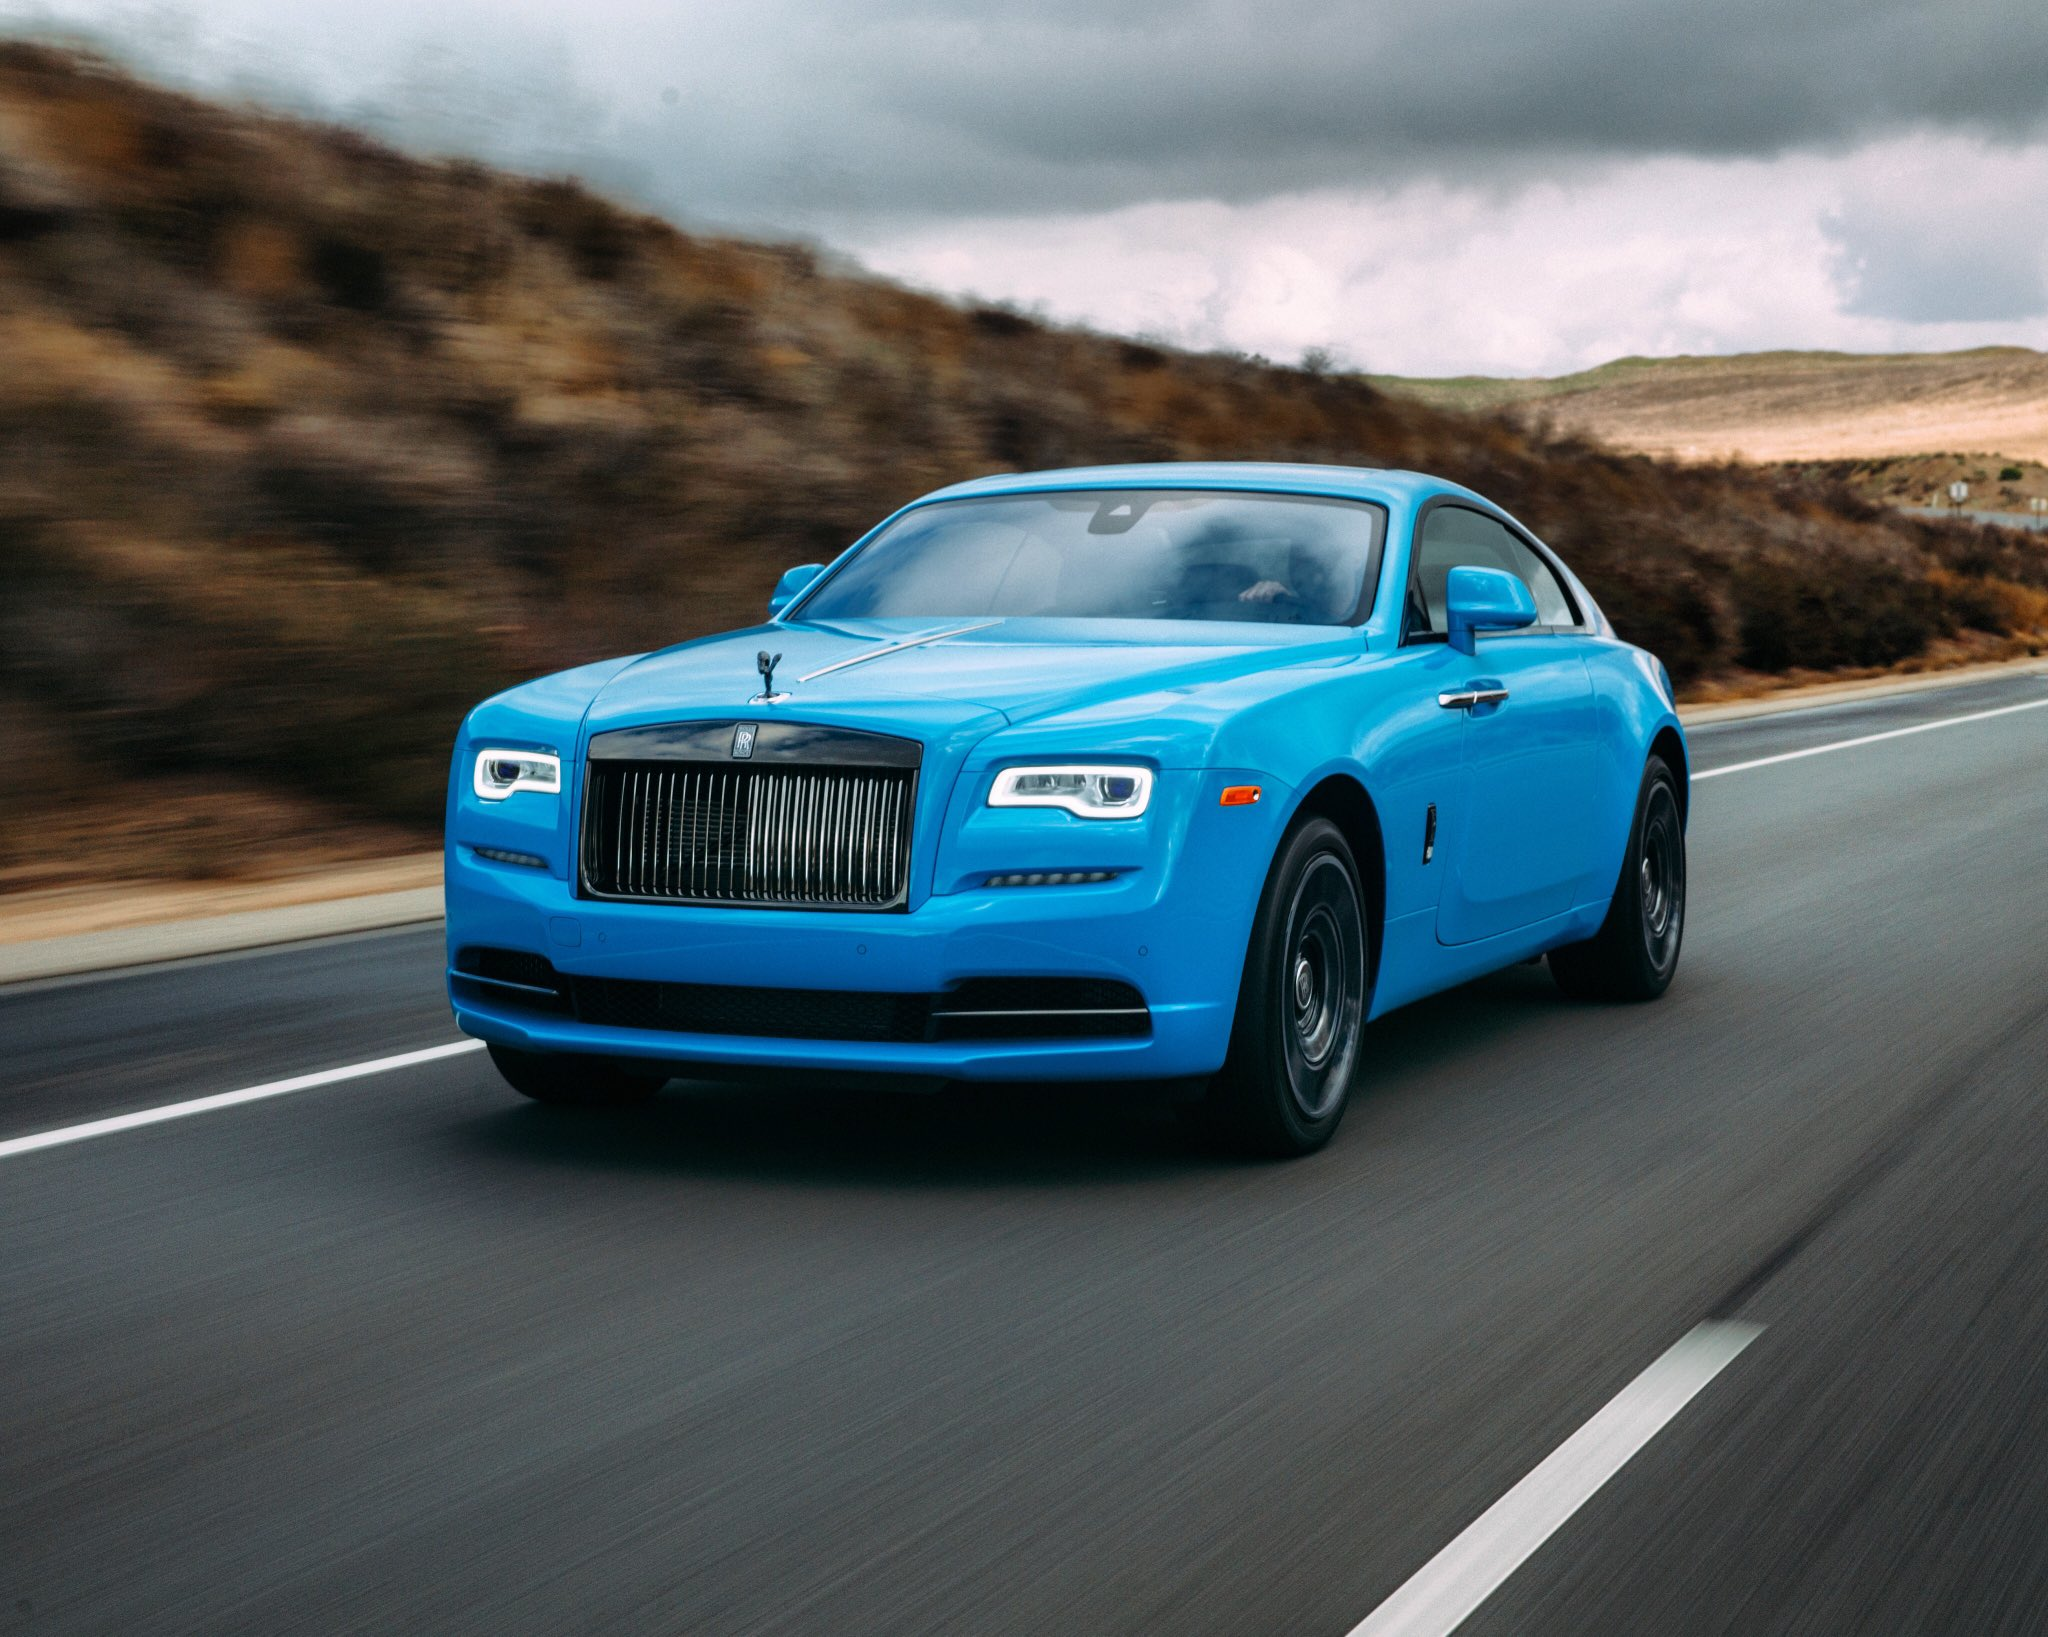 The Rolls Royce Wraith in Mexico Blue